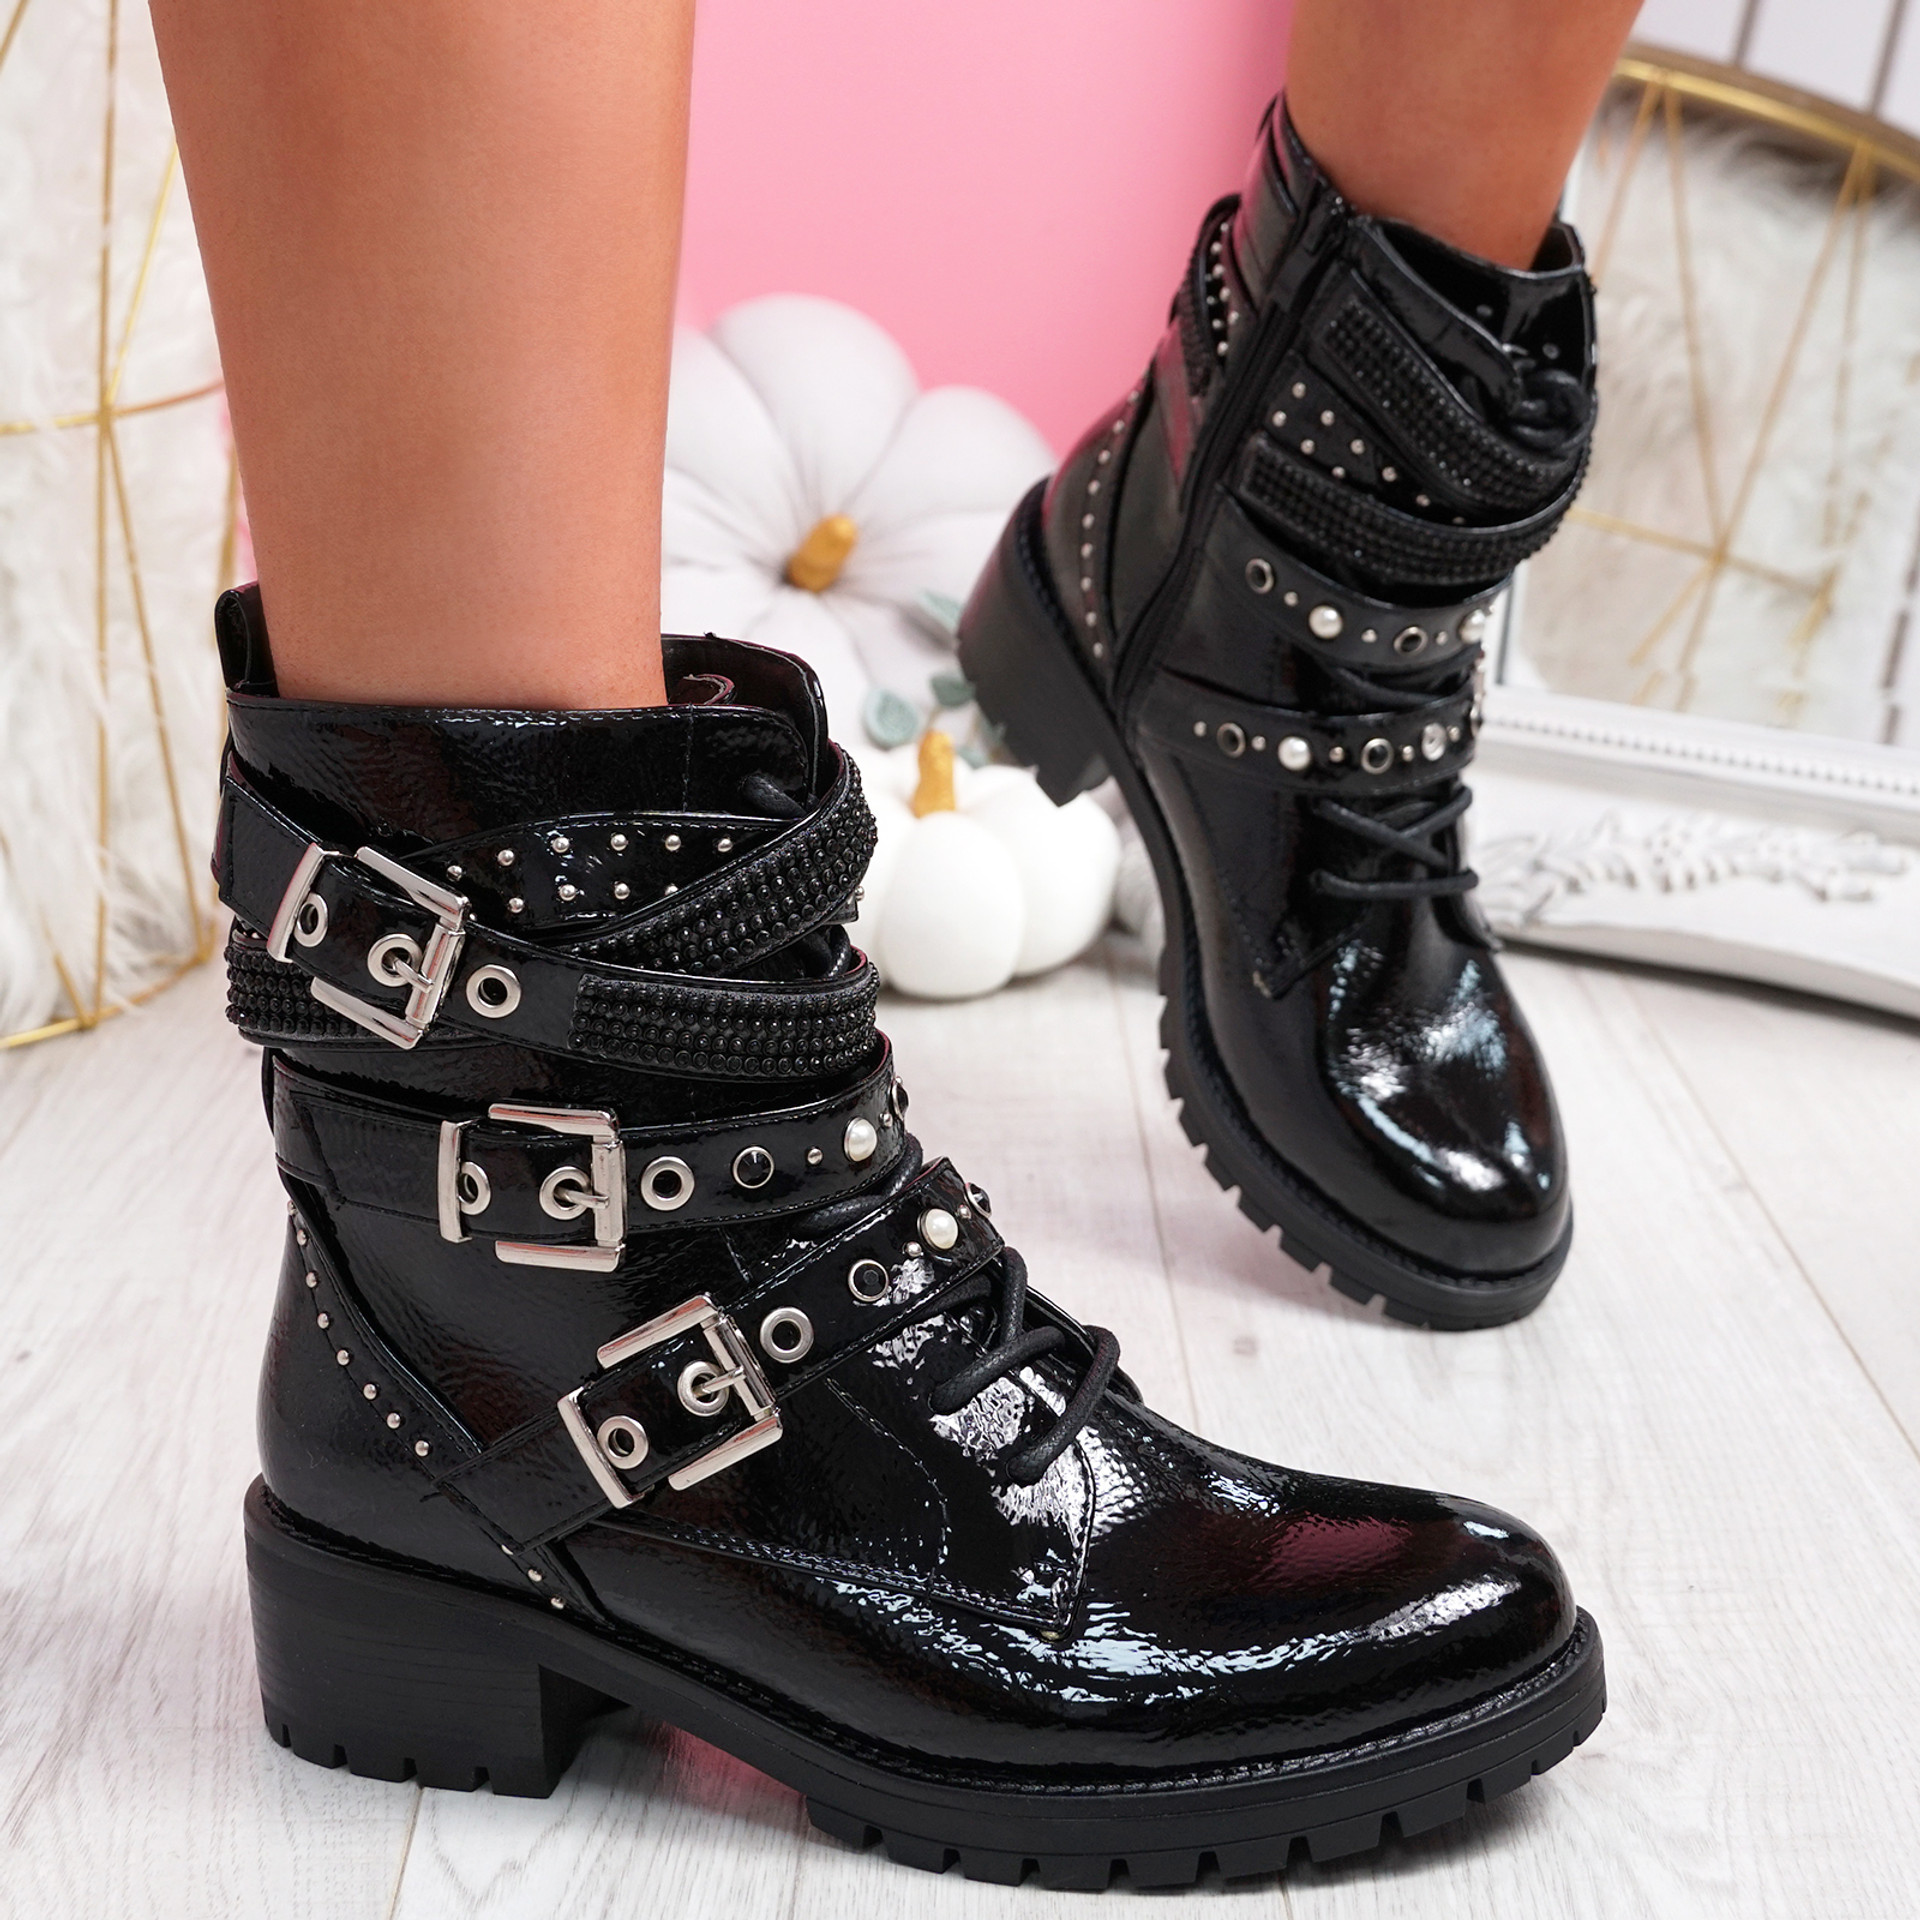 Lobbe Black Patent Ankle Boots